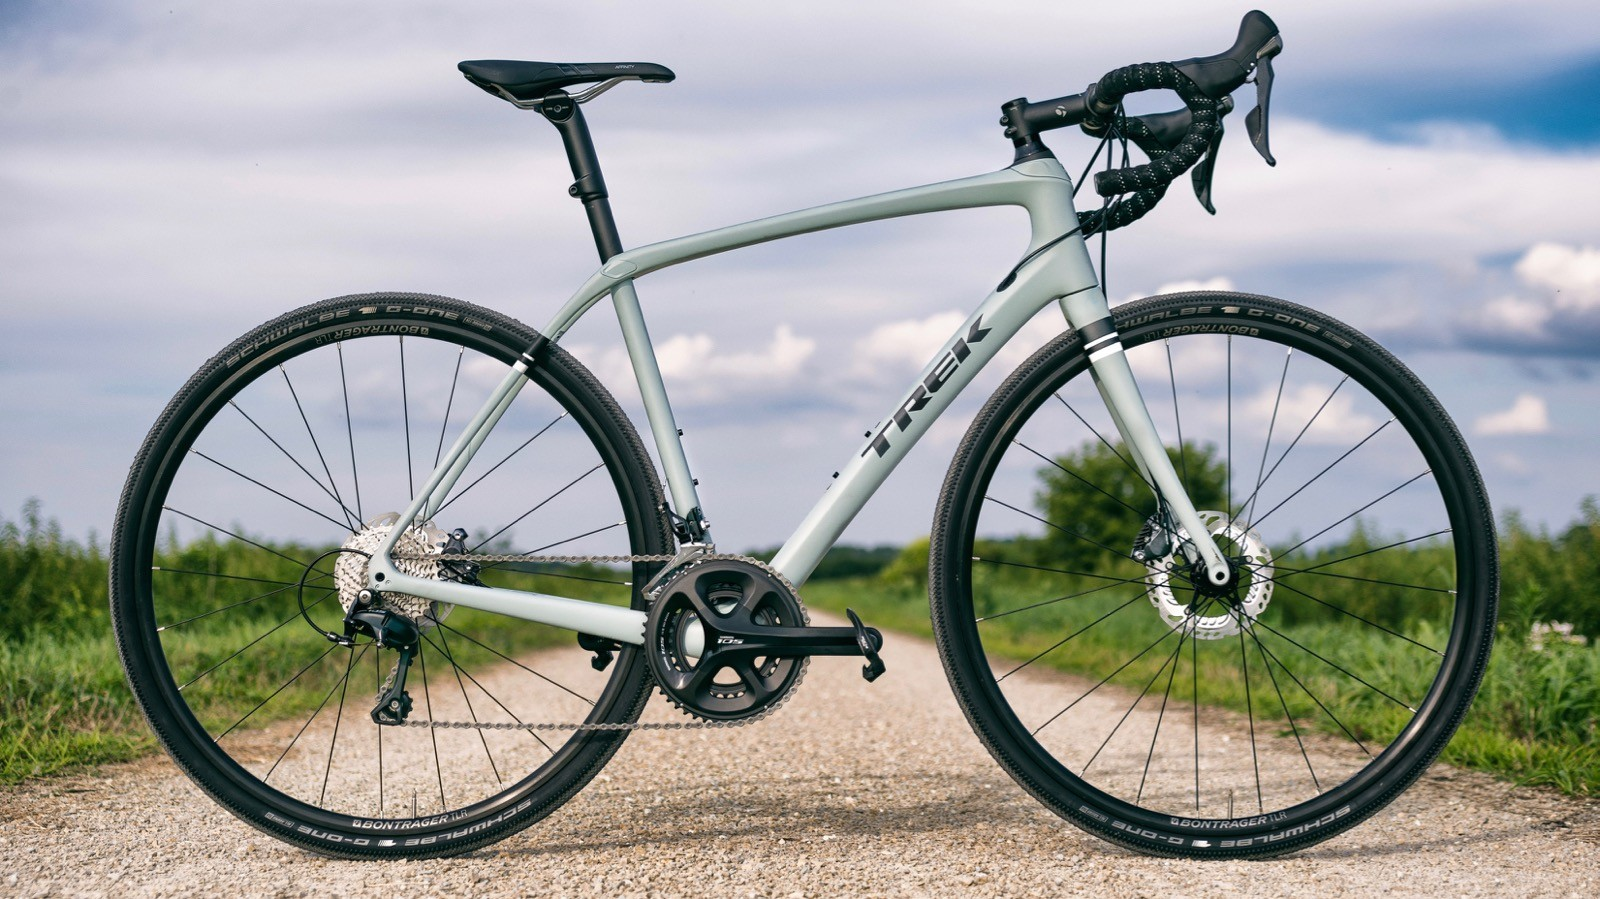 The $2,499 Trek Domane SL 5 Gravel features a carbon frameset, a Shimano 105 group and 35mm Schwalbe G-One tires